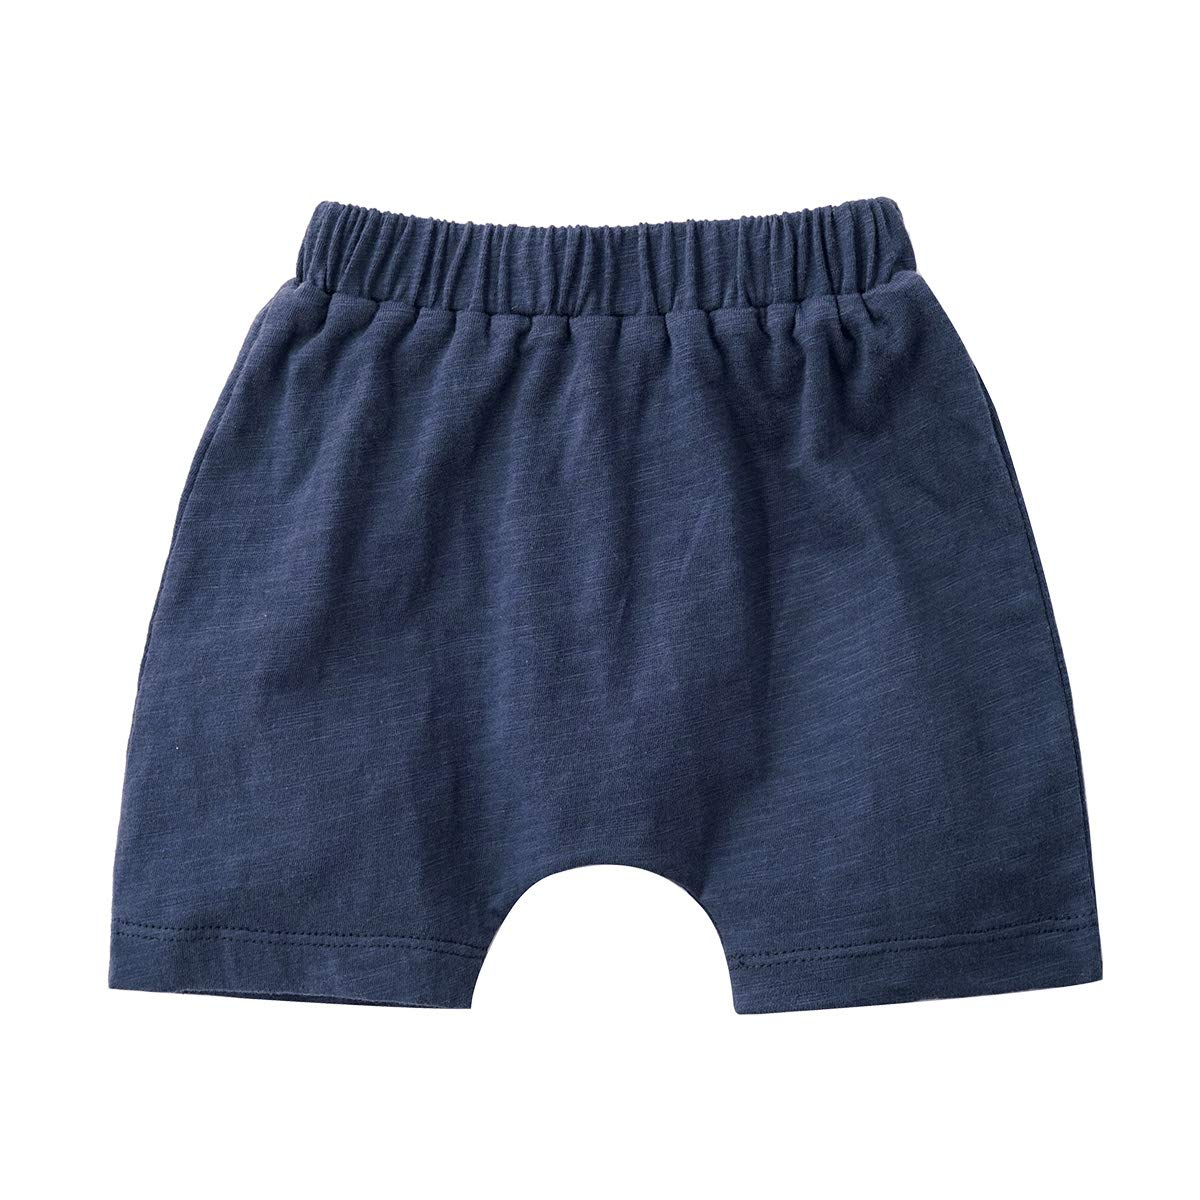 QGAKAGO Infant Baby 3-Pack Cotton Soild Color Short with Drawstring 3-24 Months